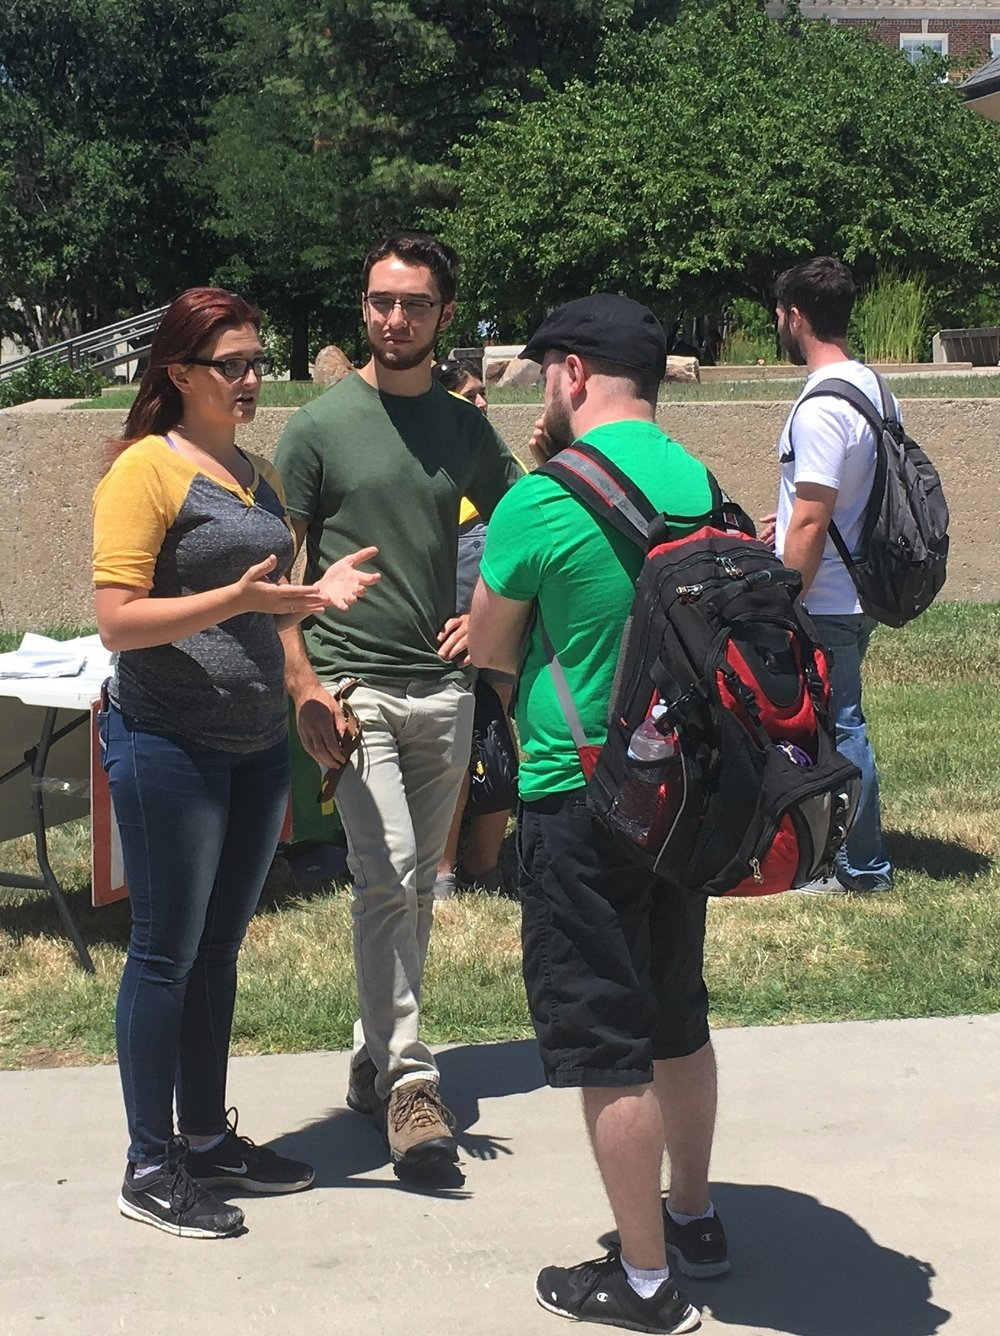 JFA volunteer Ashley (left) talks with a student at JFA's June 2018 outreach at Wichita State University.